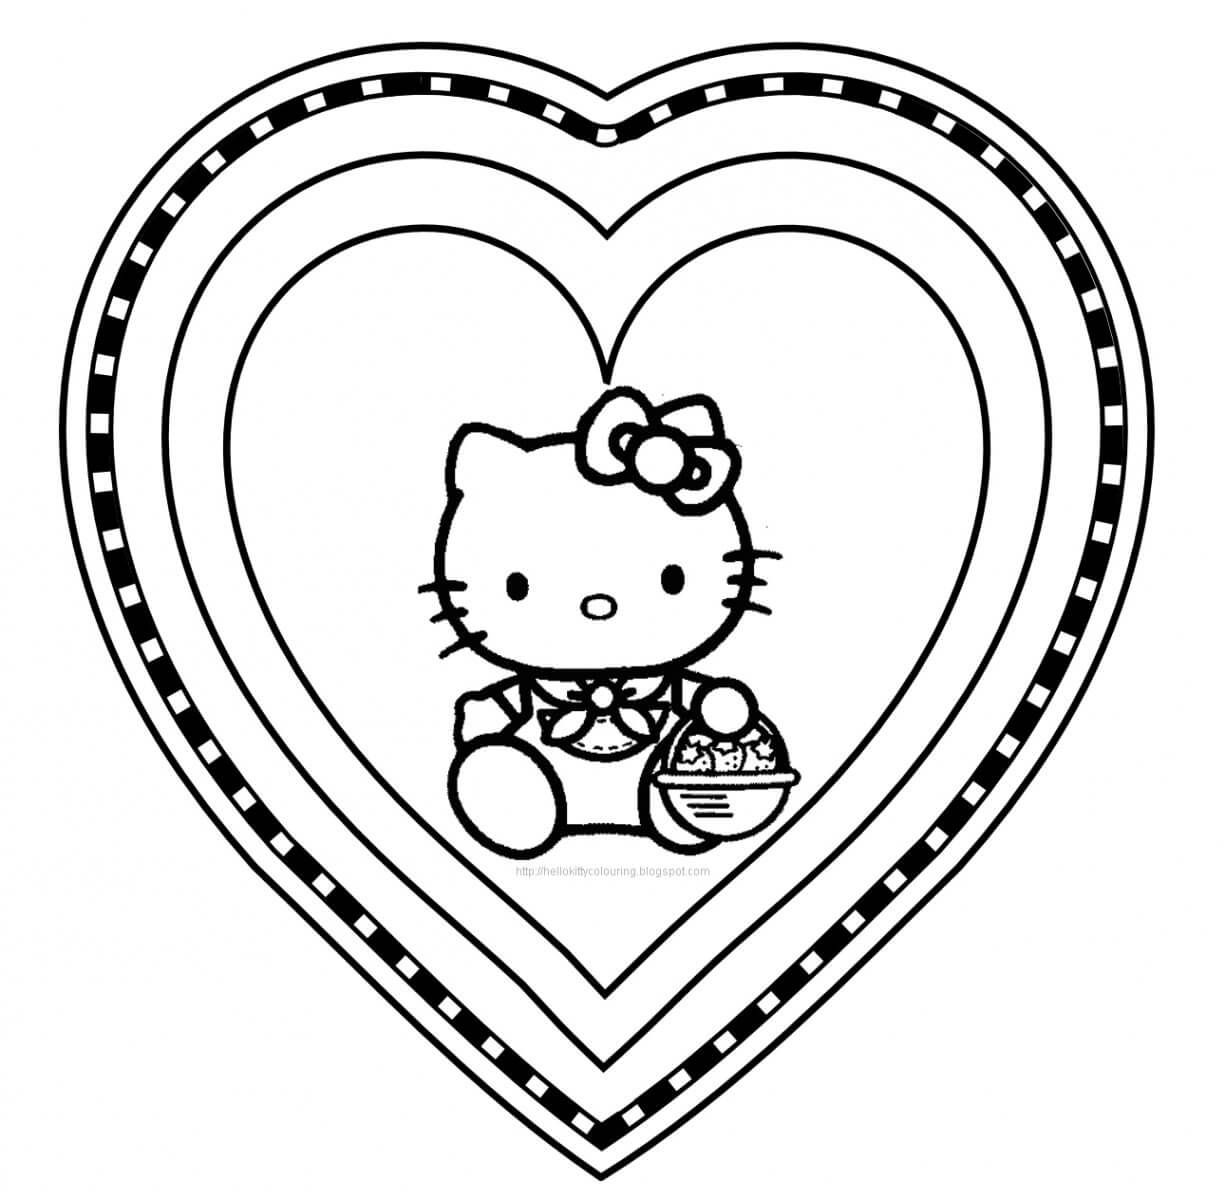 dibujo de hello kitty enamorada